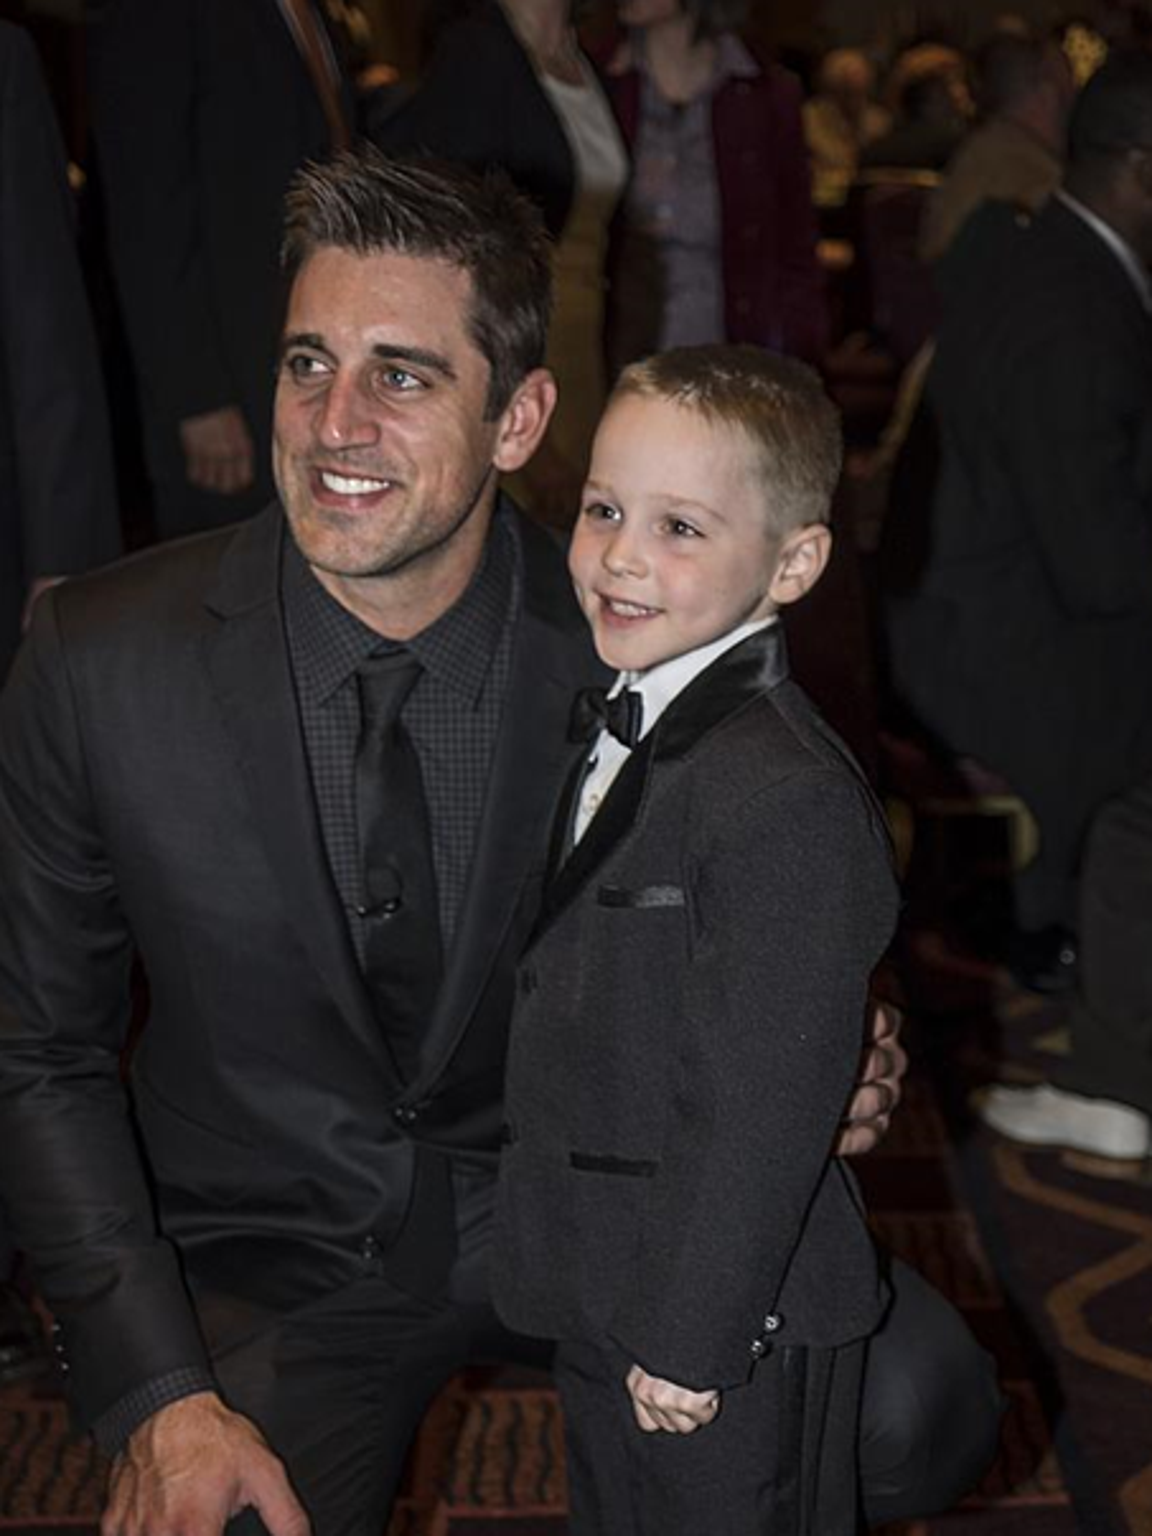 Rodgers has helped raise more than $2 million for the